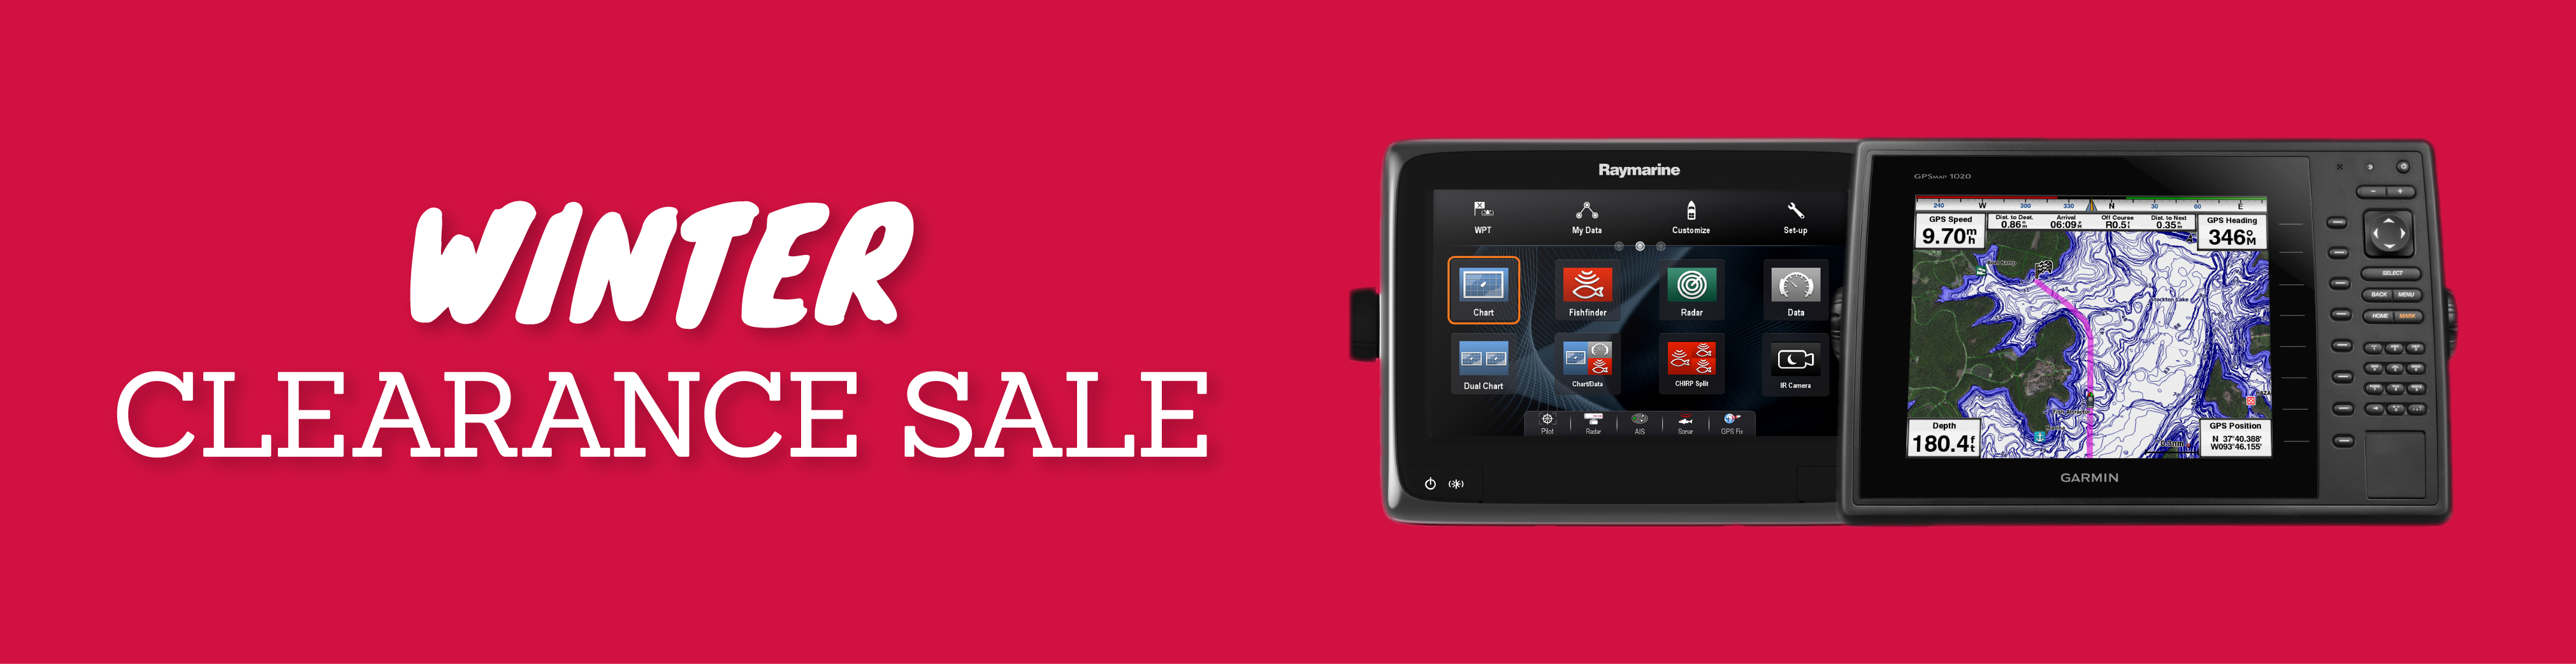 rowlands marine electronics winter clearance sale banner